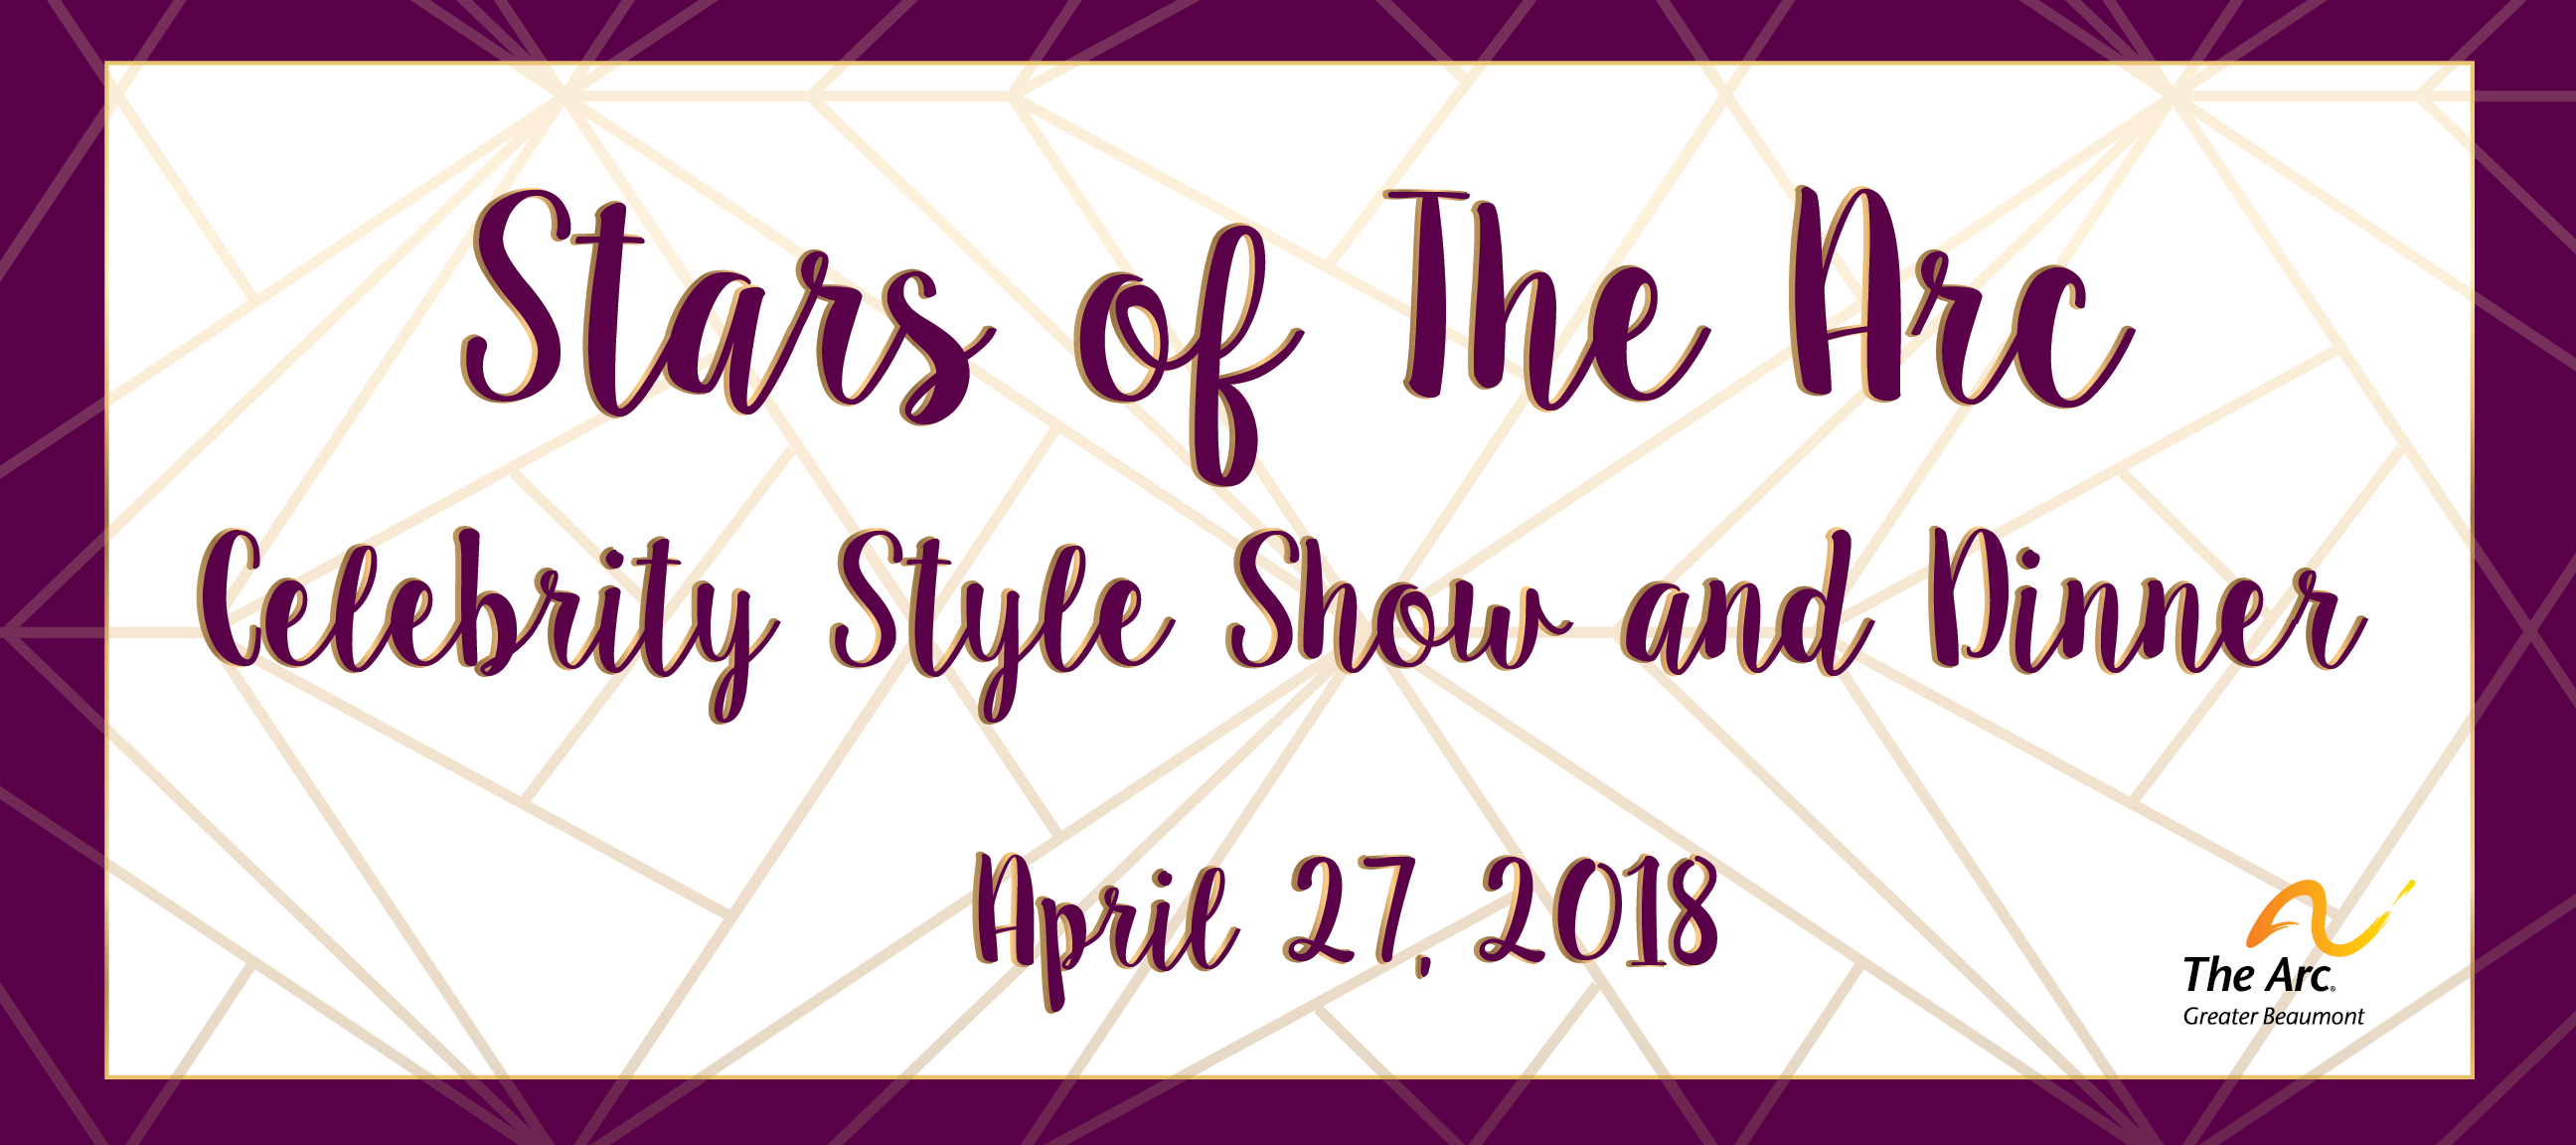 2018 Stars of The Arc Celebrity Style Show and Dinner @ Holiday Inn & Suites Beaumont Plaza  | Beaumont | Texas | United States